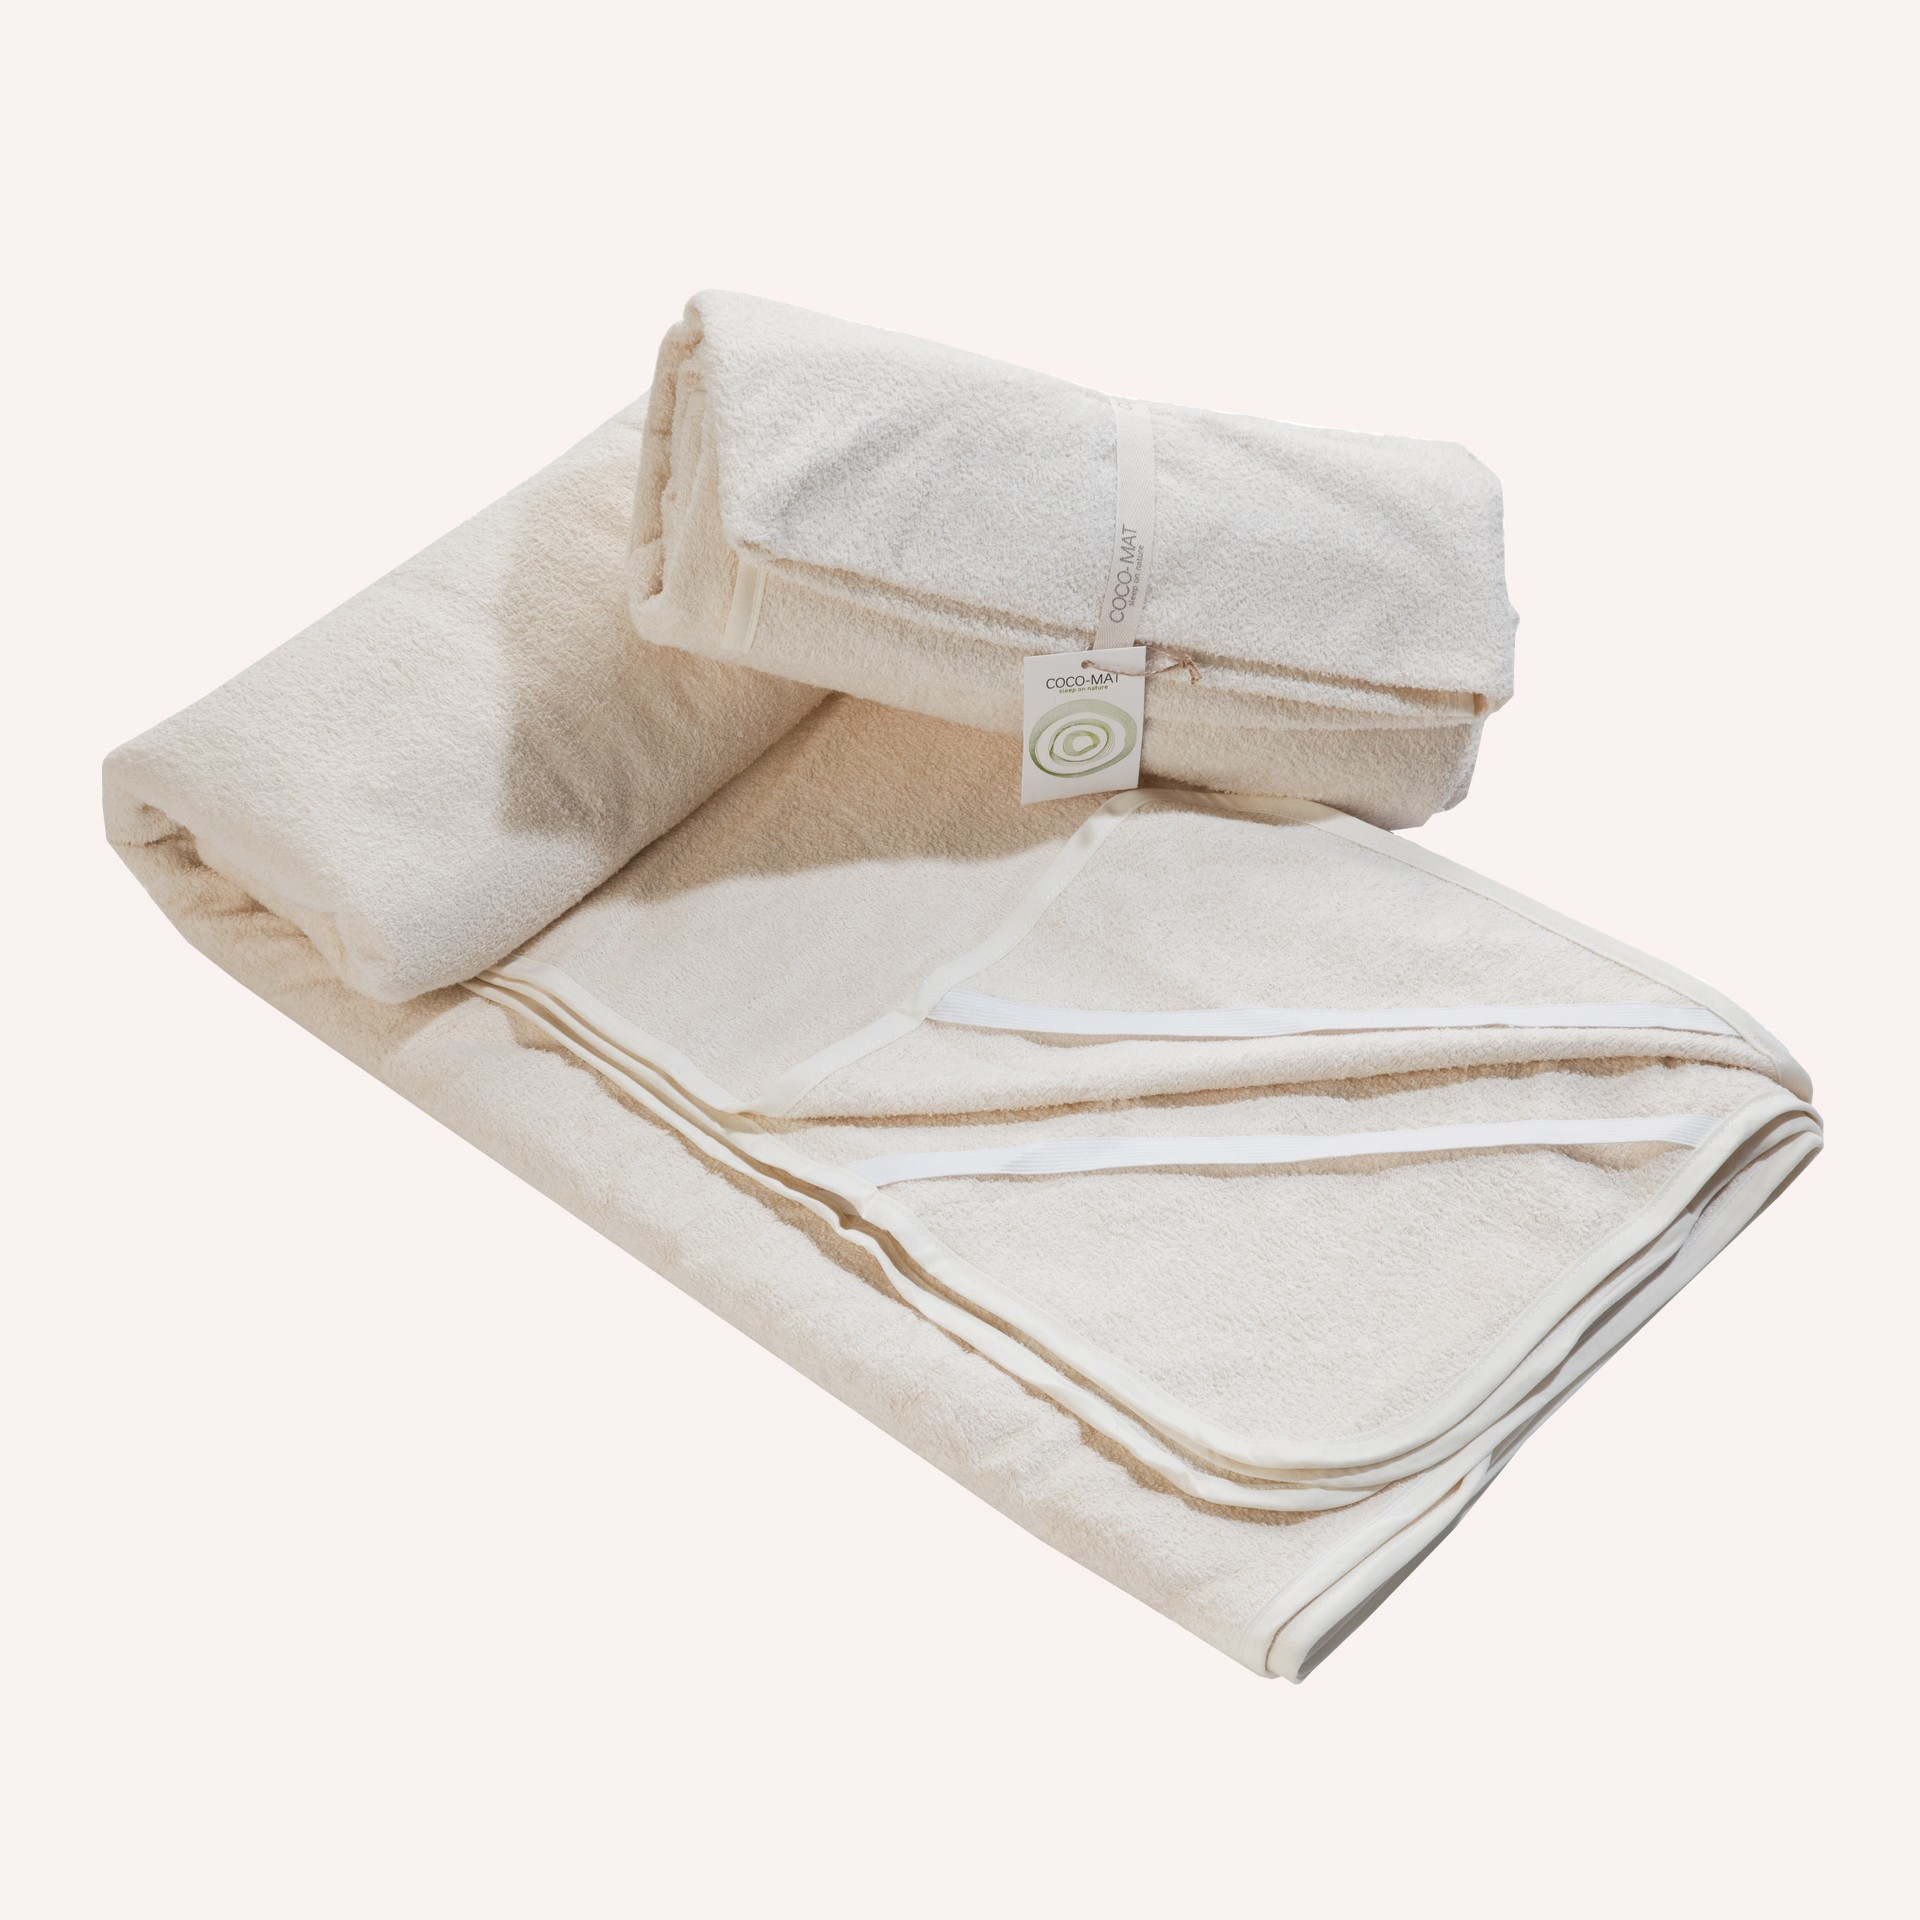 Protective mattress cover Galatia